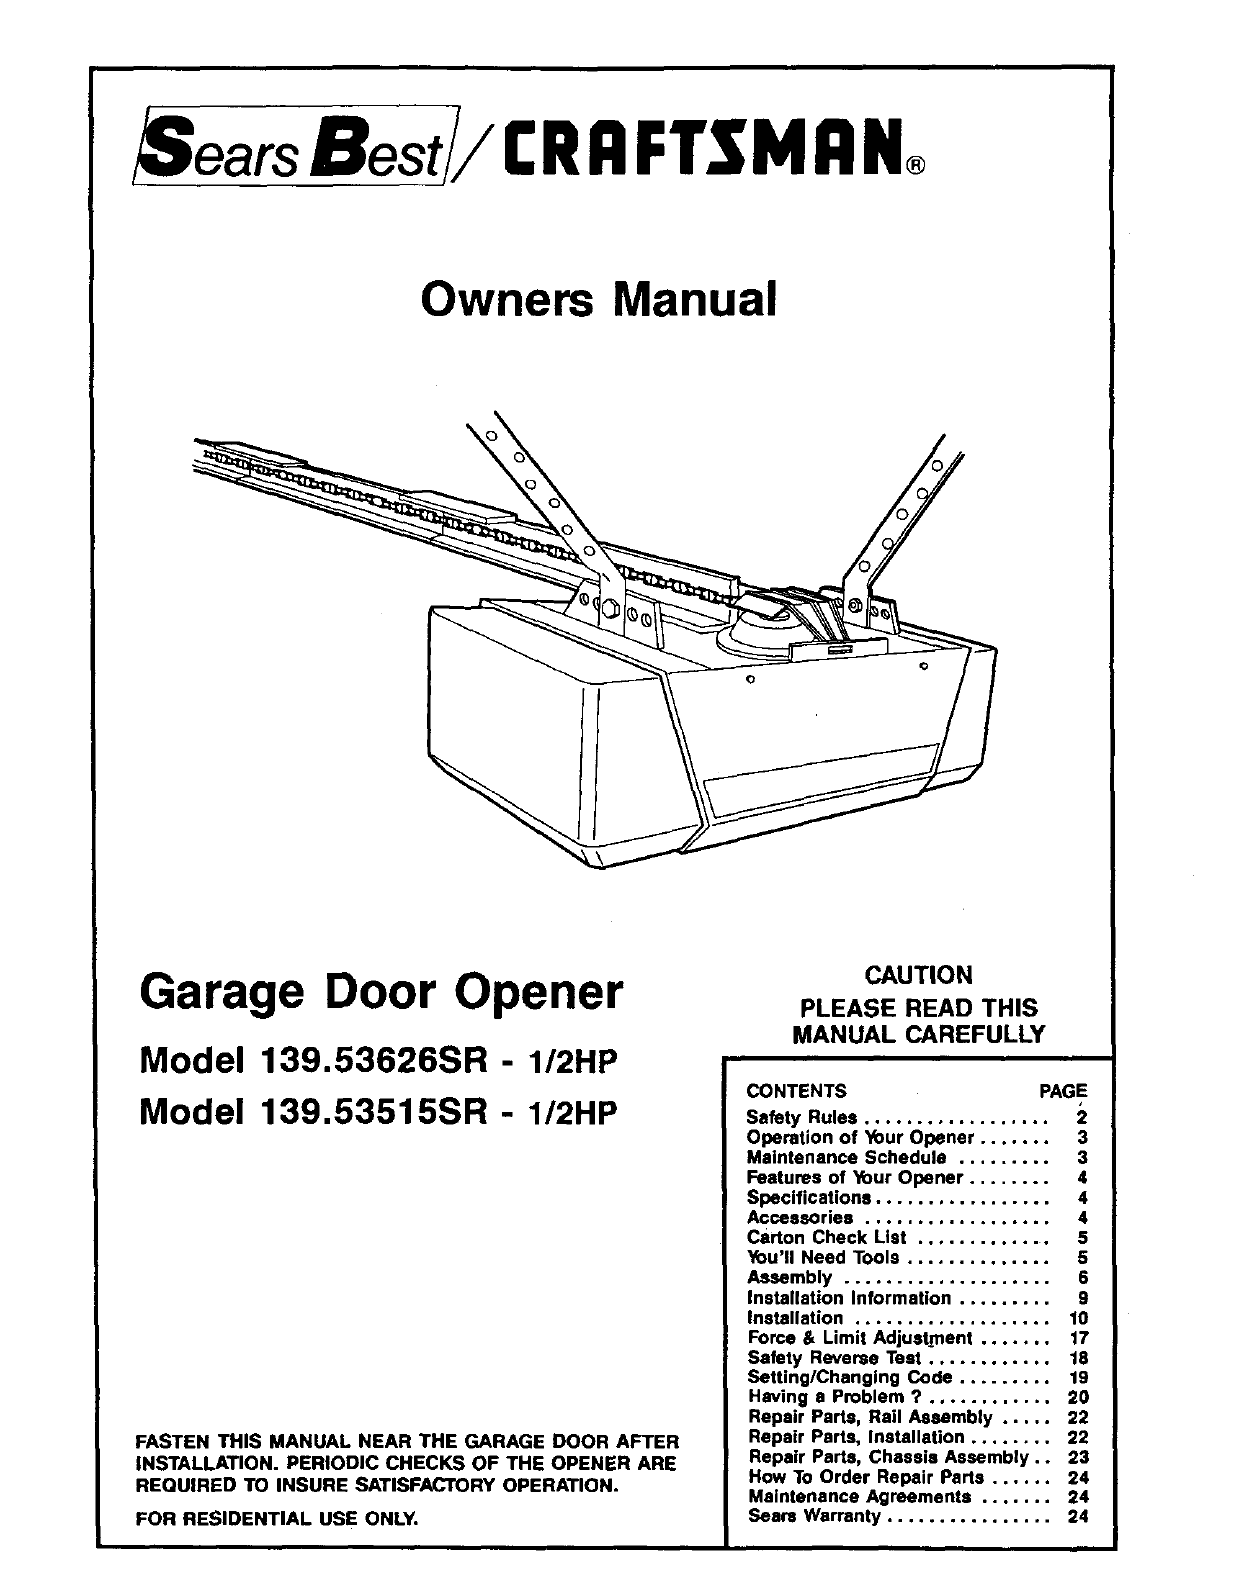 Diagram Garage Door Opener Wiring Diagram Craftsman Full Version Hd Quality Diagram Craftsman Diagramatlas Rapfrance Fr